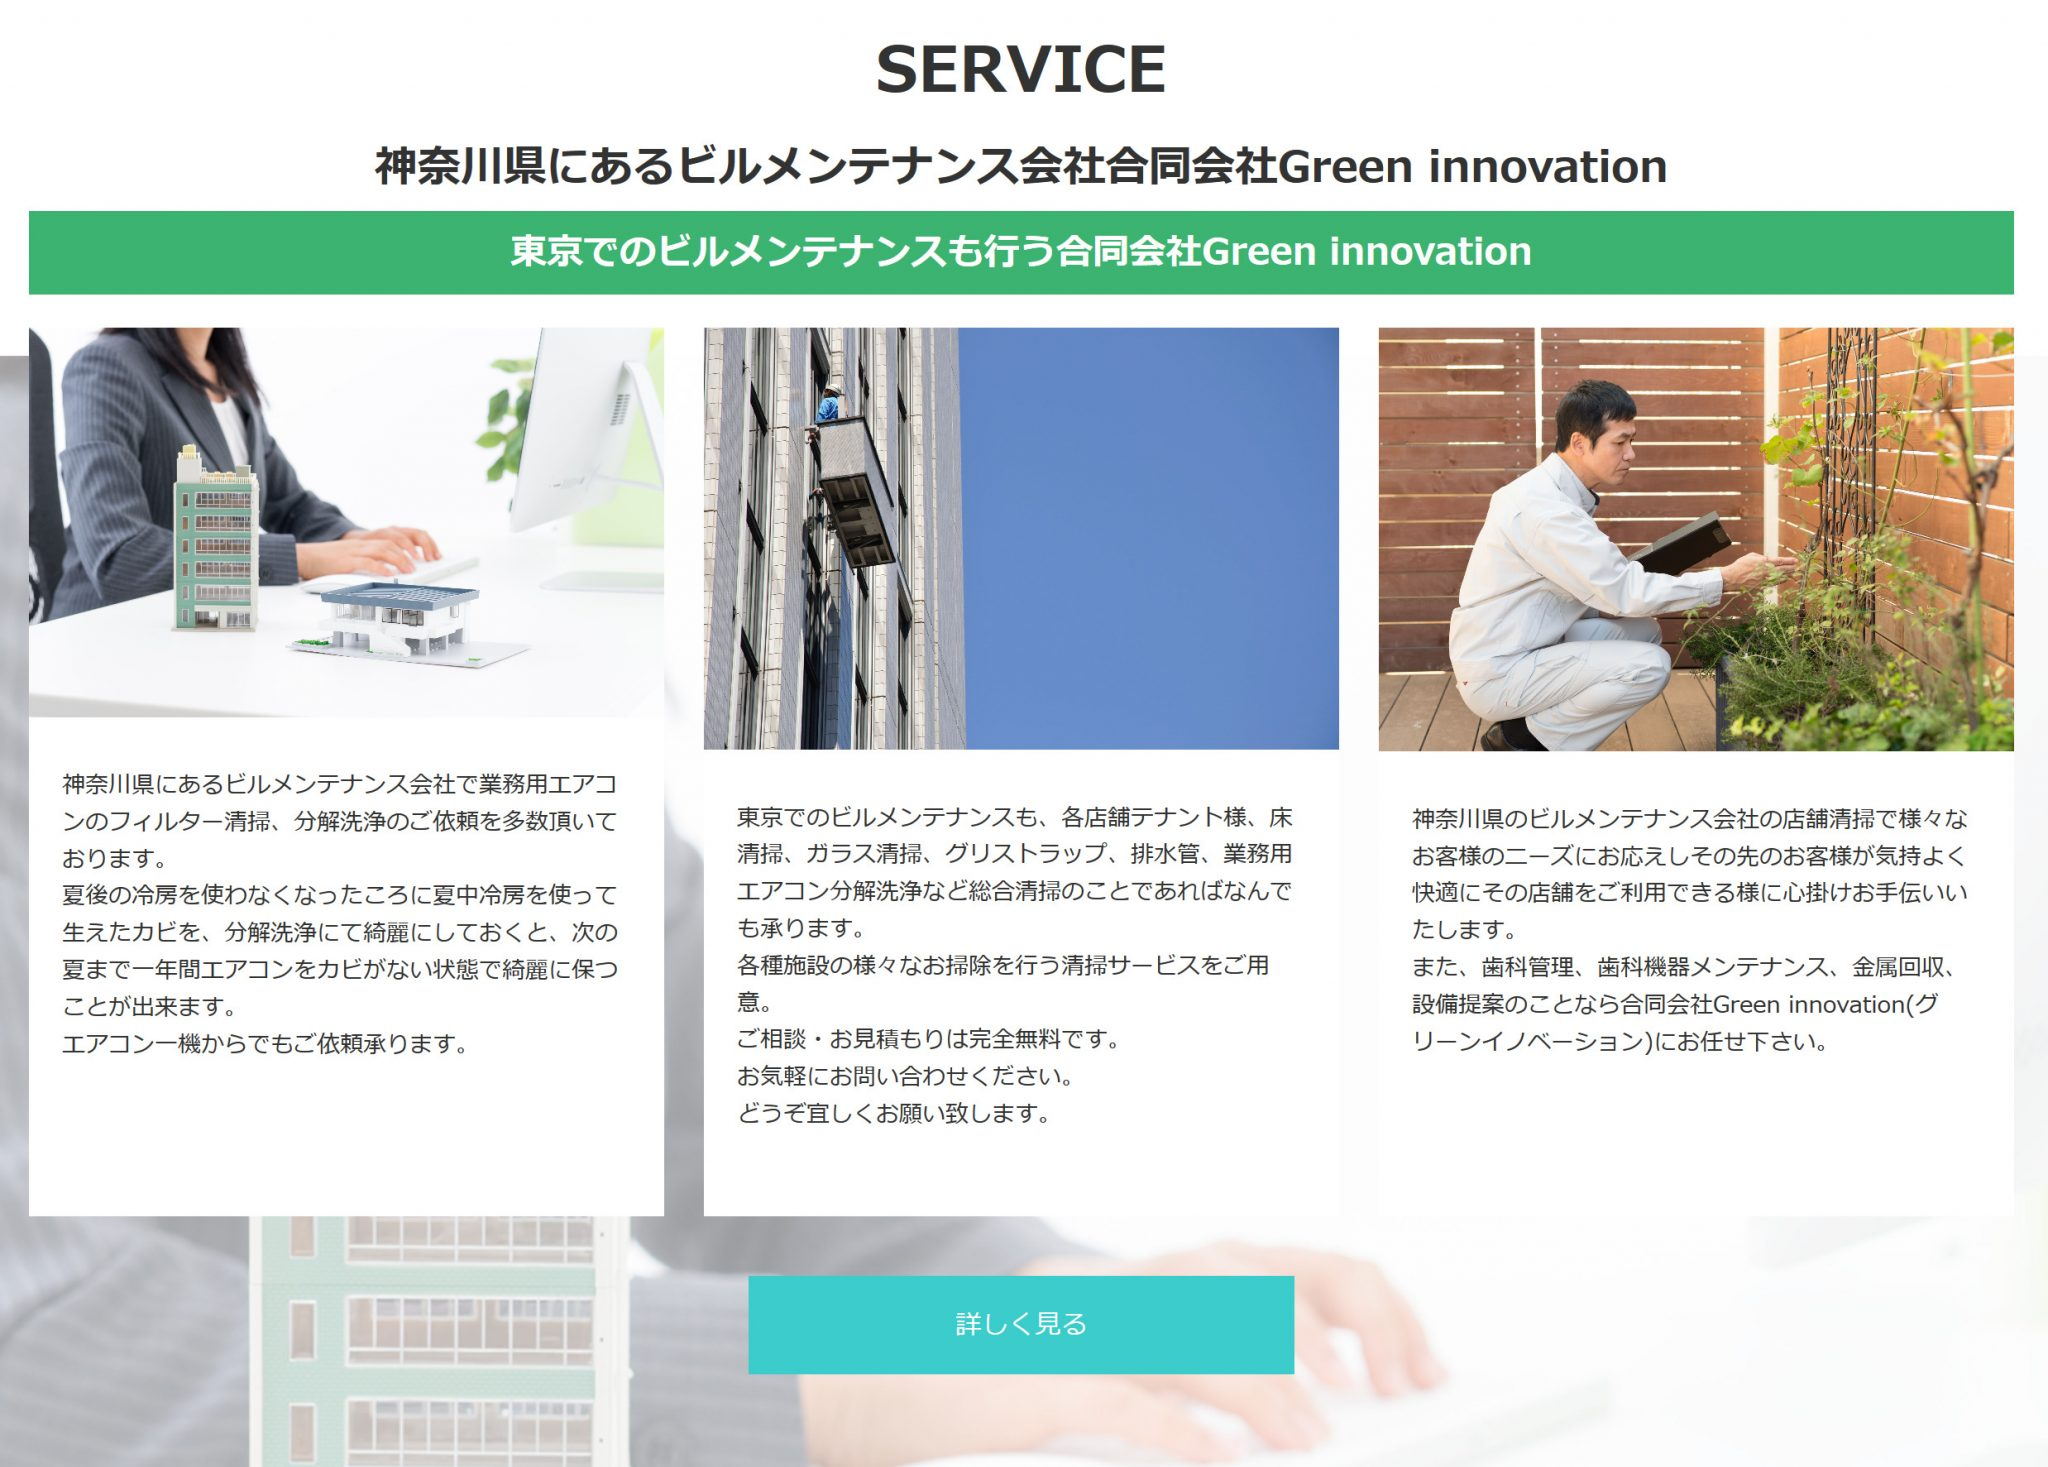 合同会社Green innovation